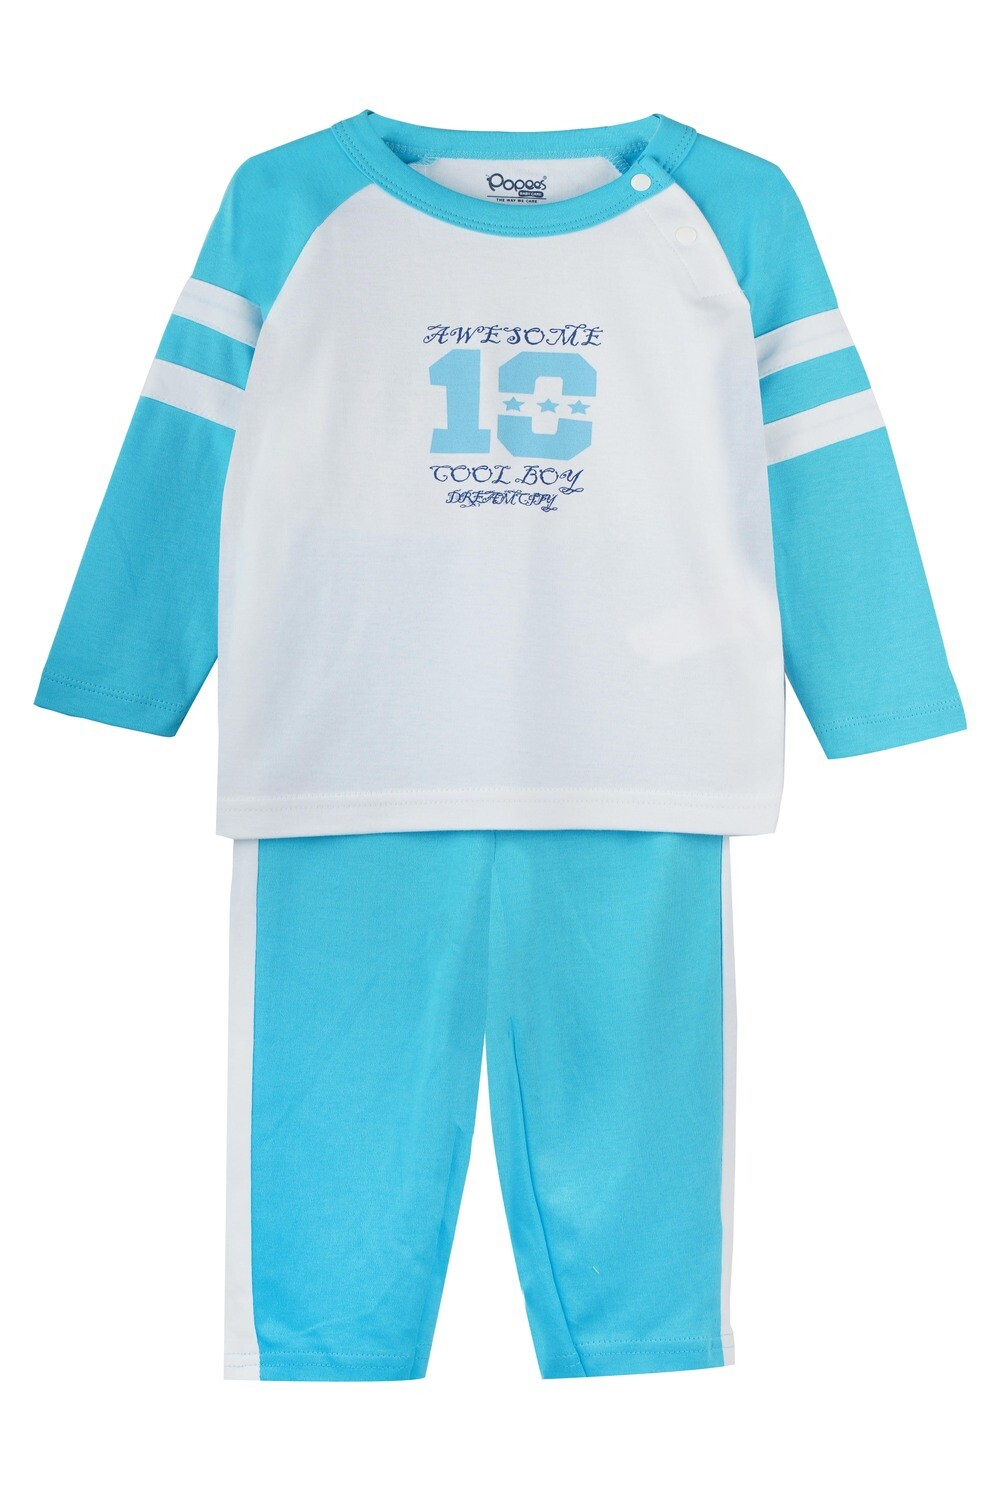 ELIGE BACHELOR BLUE Full Sleeve Top and Pant for Baby Boys